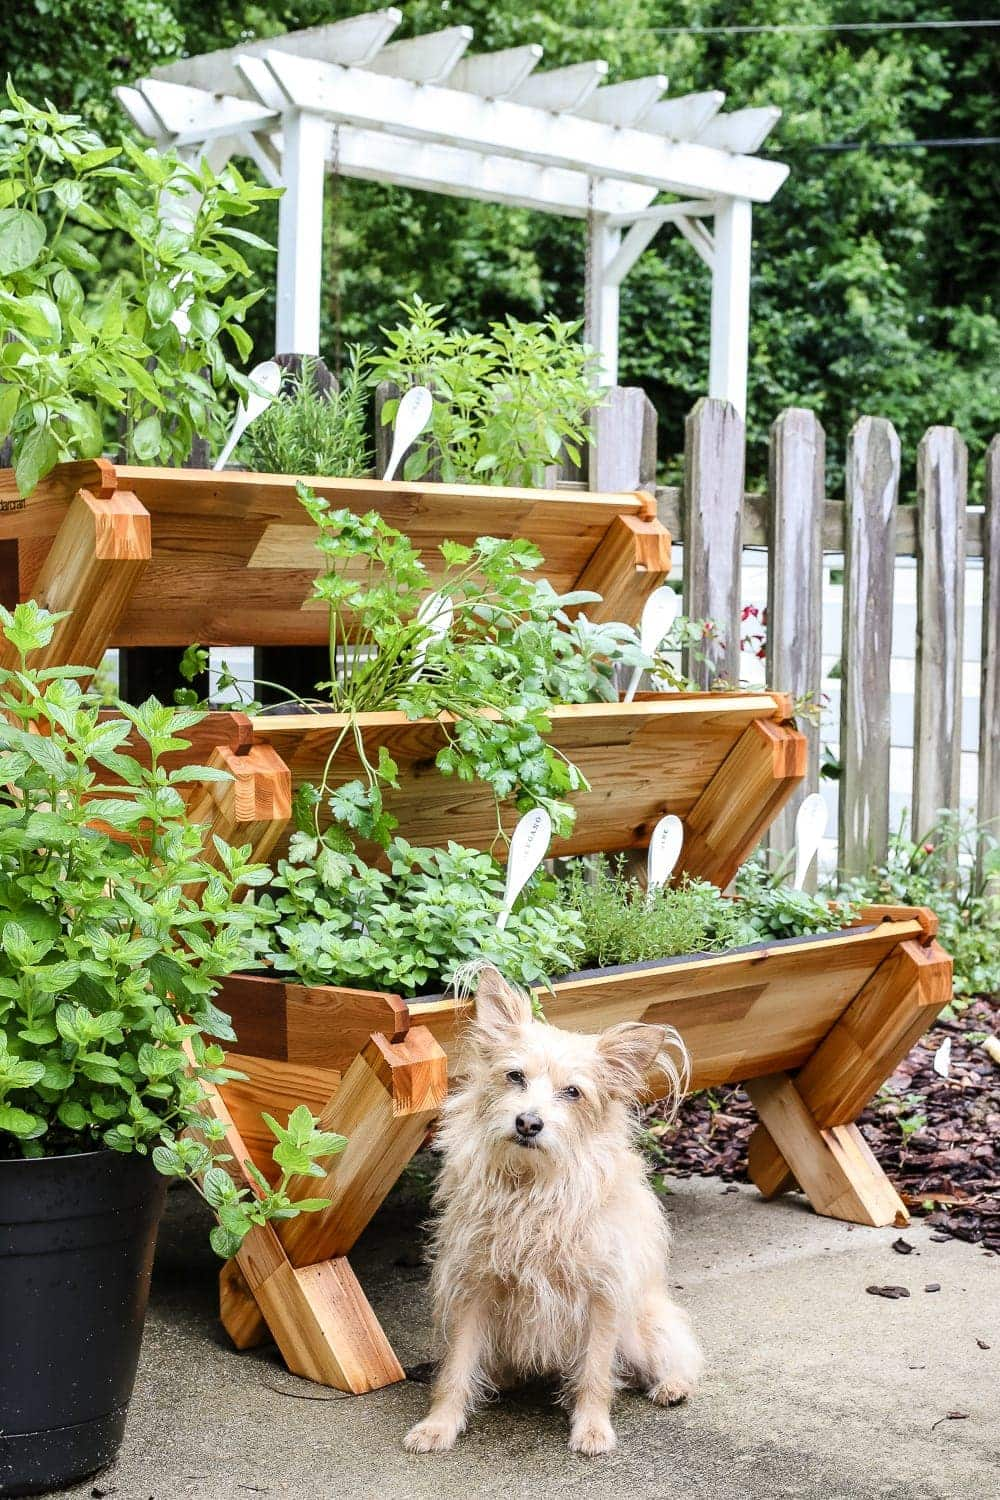 DIY Wooden Spoon Garden Markers   blesserhouse.com - A simple tutorial for how to craft your own vintage-inspired garden markers made from wooden spoons, plus a resource for a beautiful stacked herb garden.